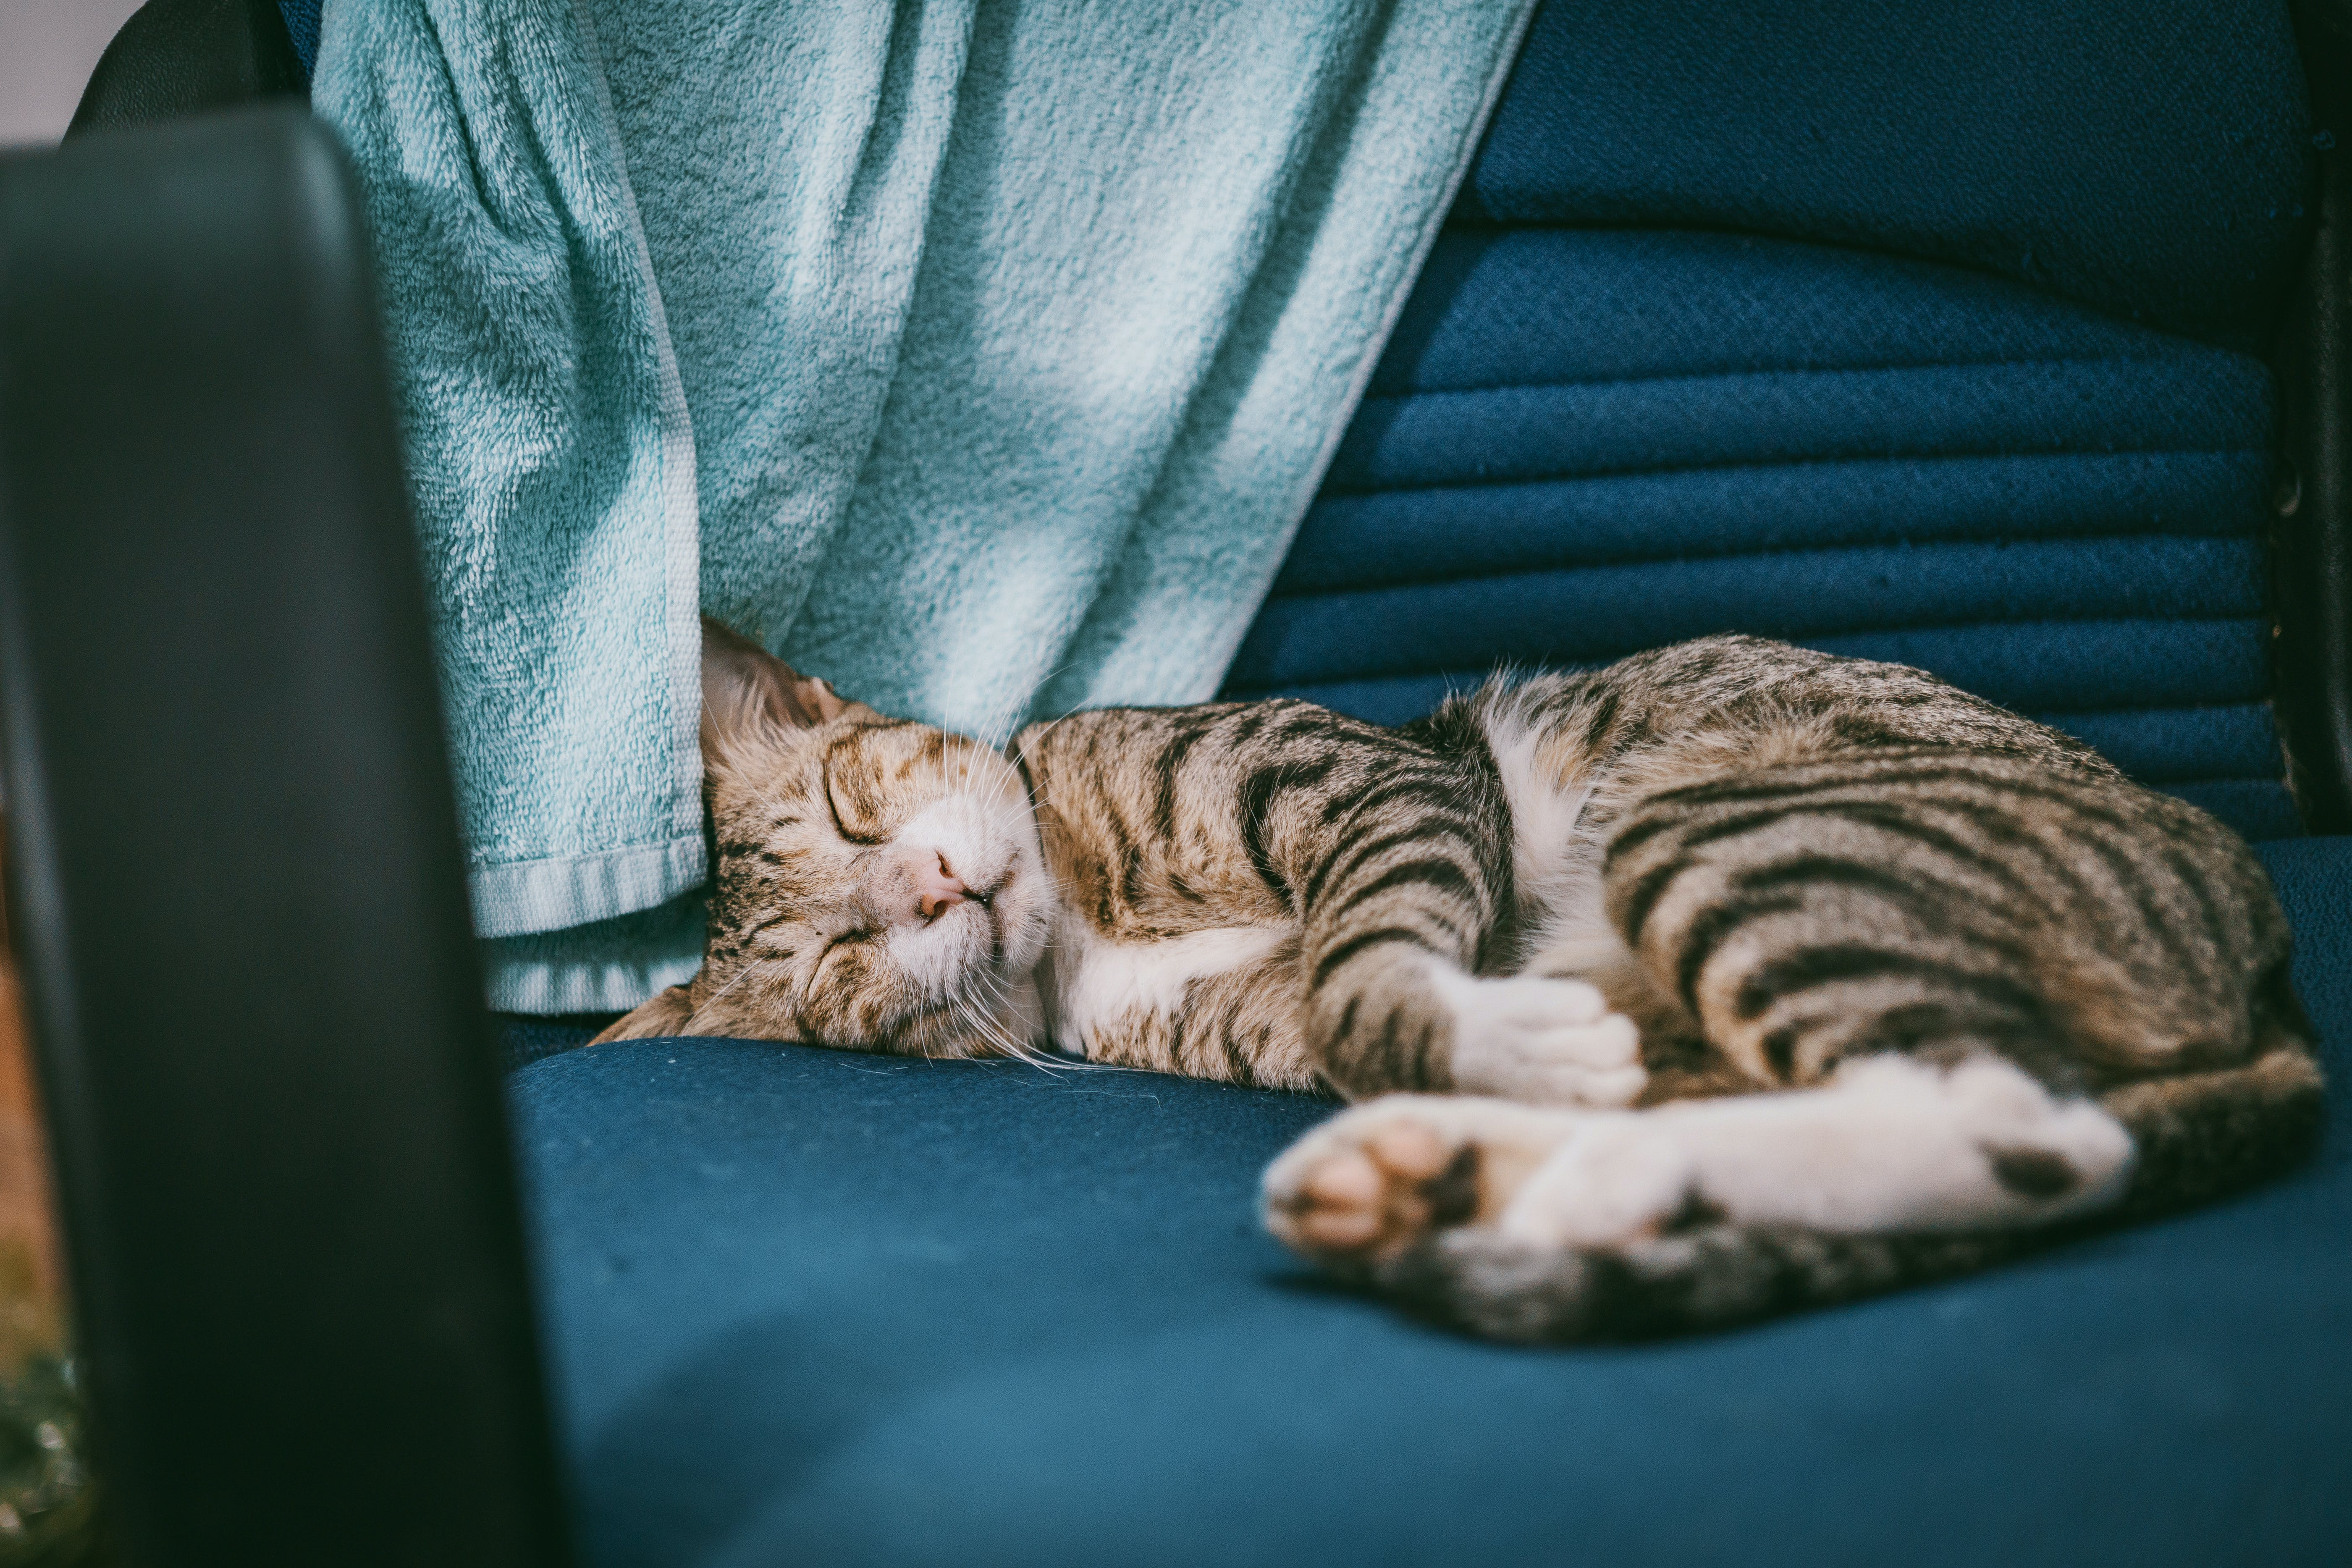 Silver Tabby Cat Lying on Teal Padded Chair